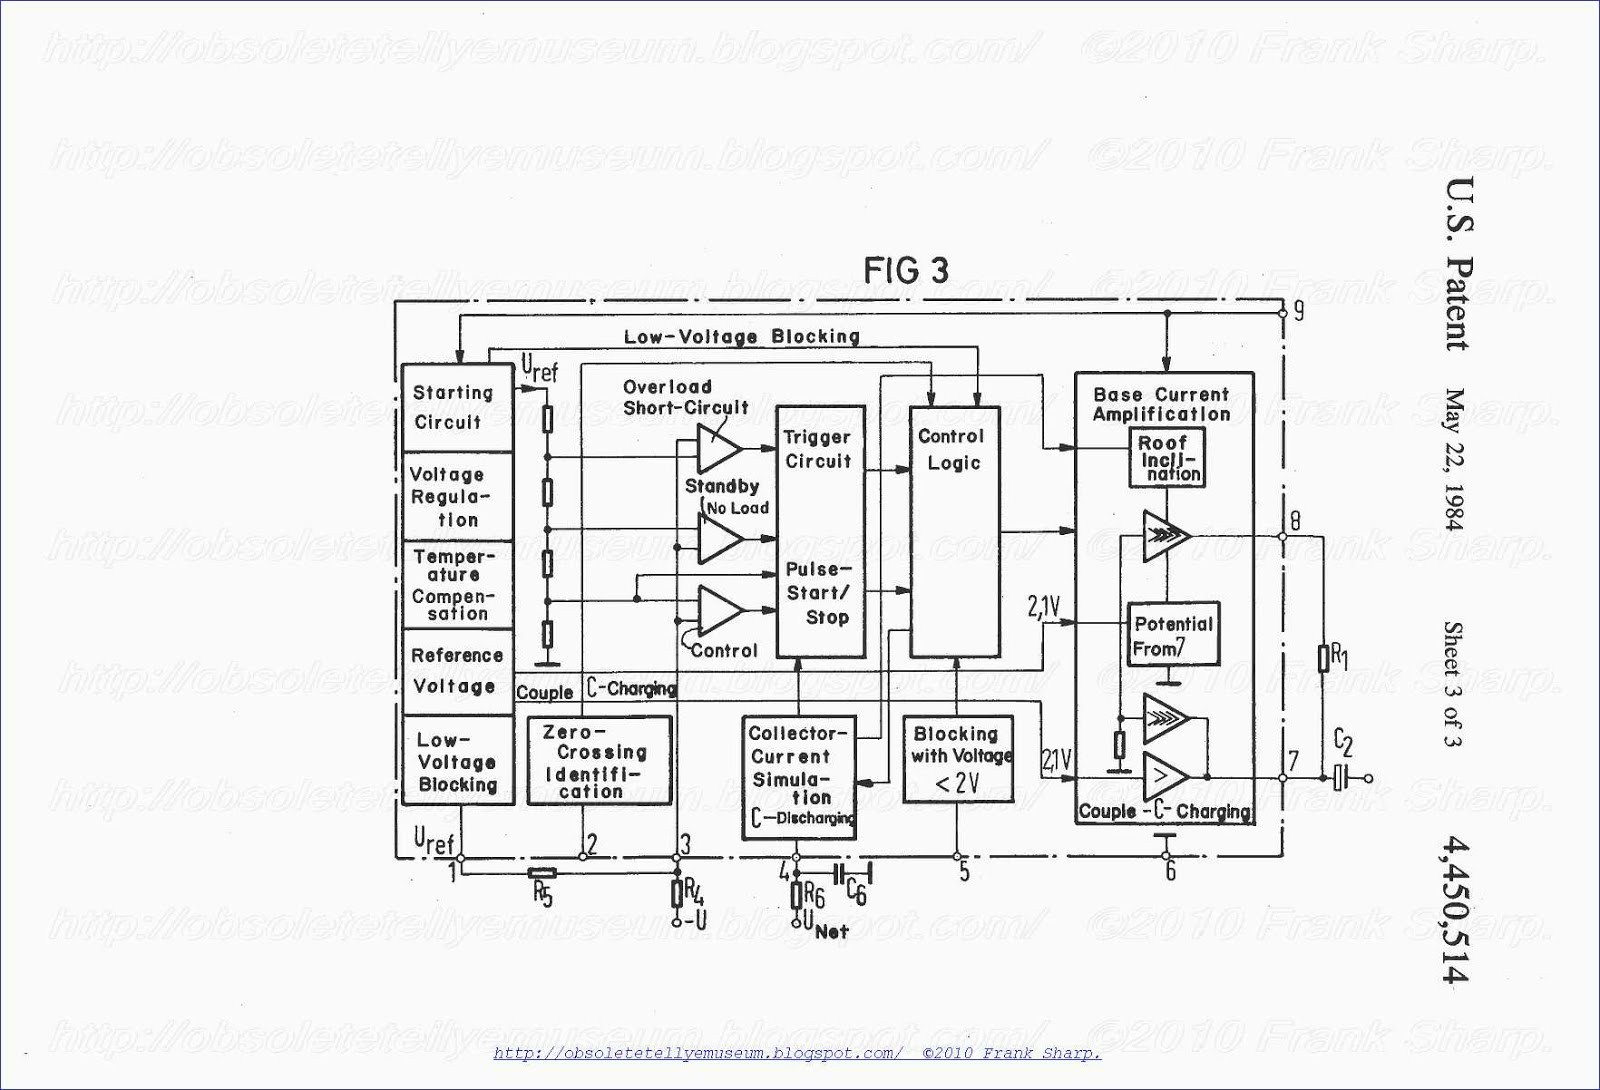 The block diagram of the control circuit according to FIG